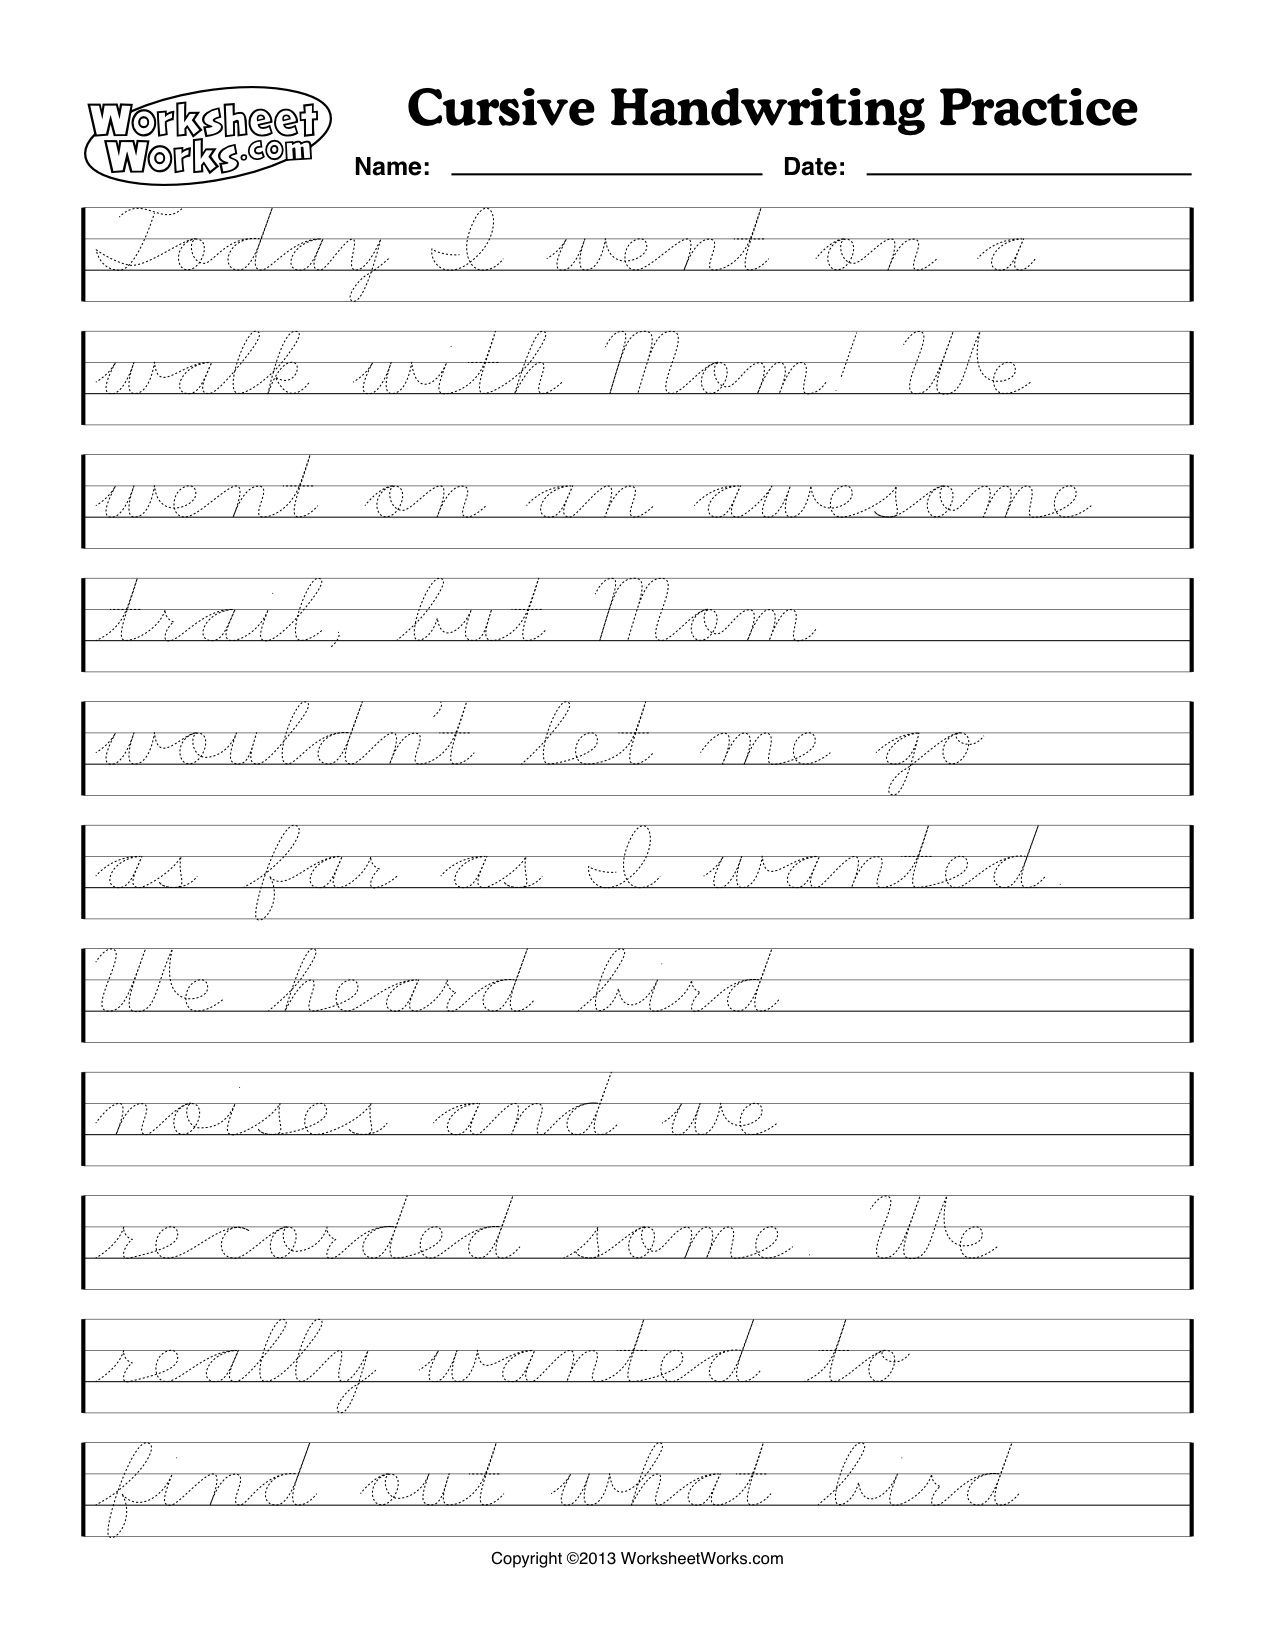 Worksheets Writing Cursive Worksheets cursive handwriting worksheets writing worksheet one word english pic 18